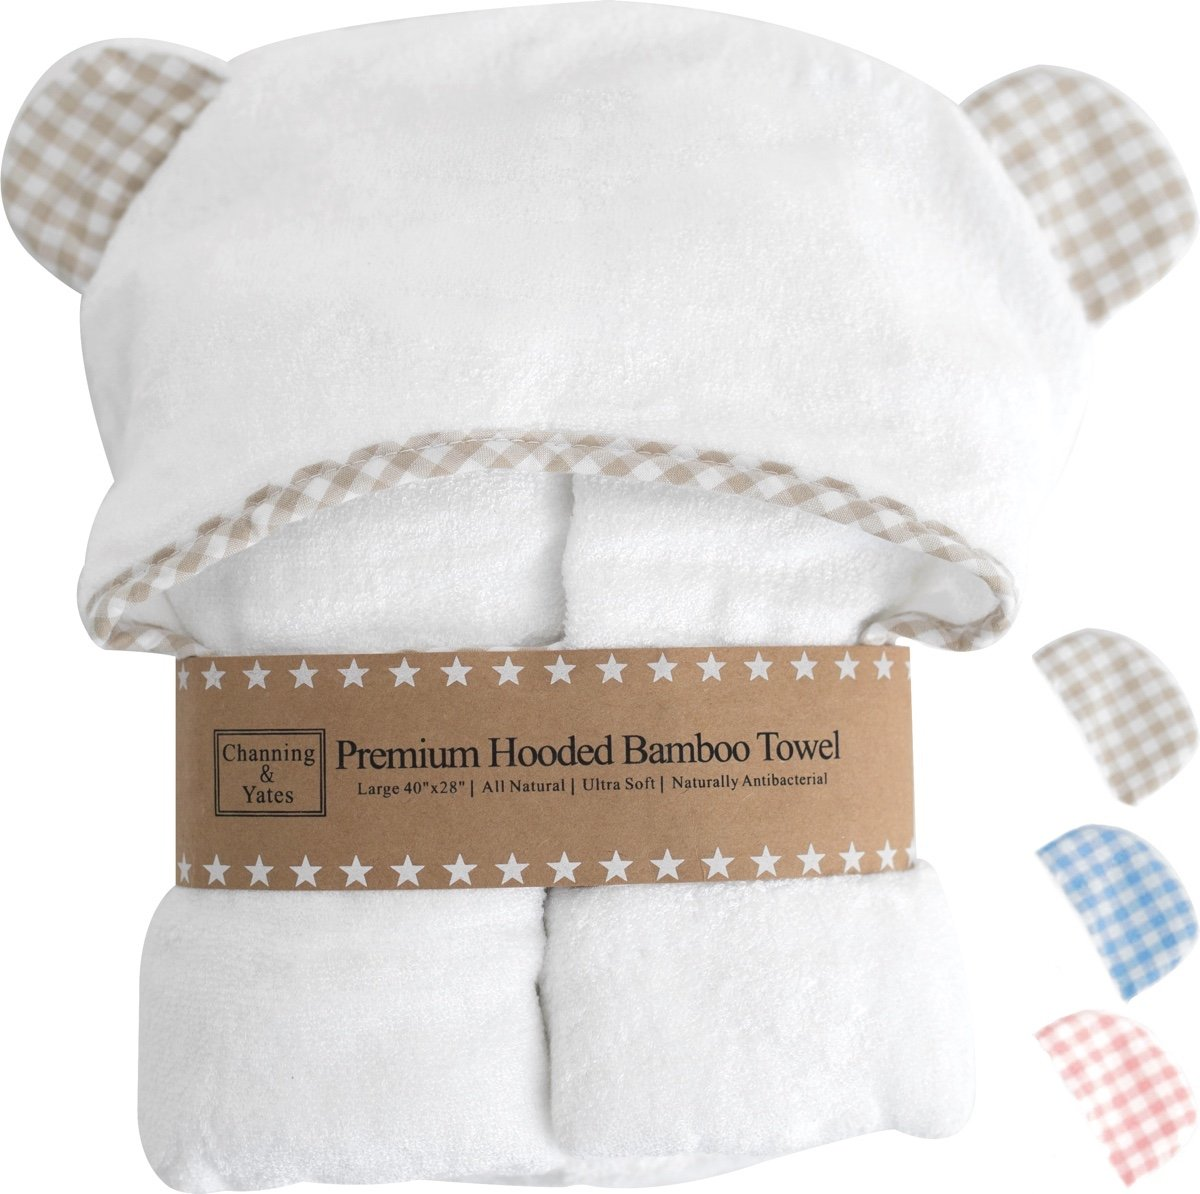 Premium Hooded Baby Towels and Washcloth Set - Organic Bamboo Baby Towel with Hood - 2x Thick & Soft - Baby Bath Towels with Hood for Boy or Girl - Beige, Blue, or Pink with White Baby Shower Gift